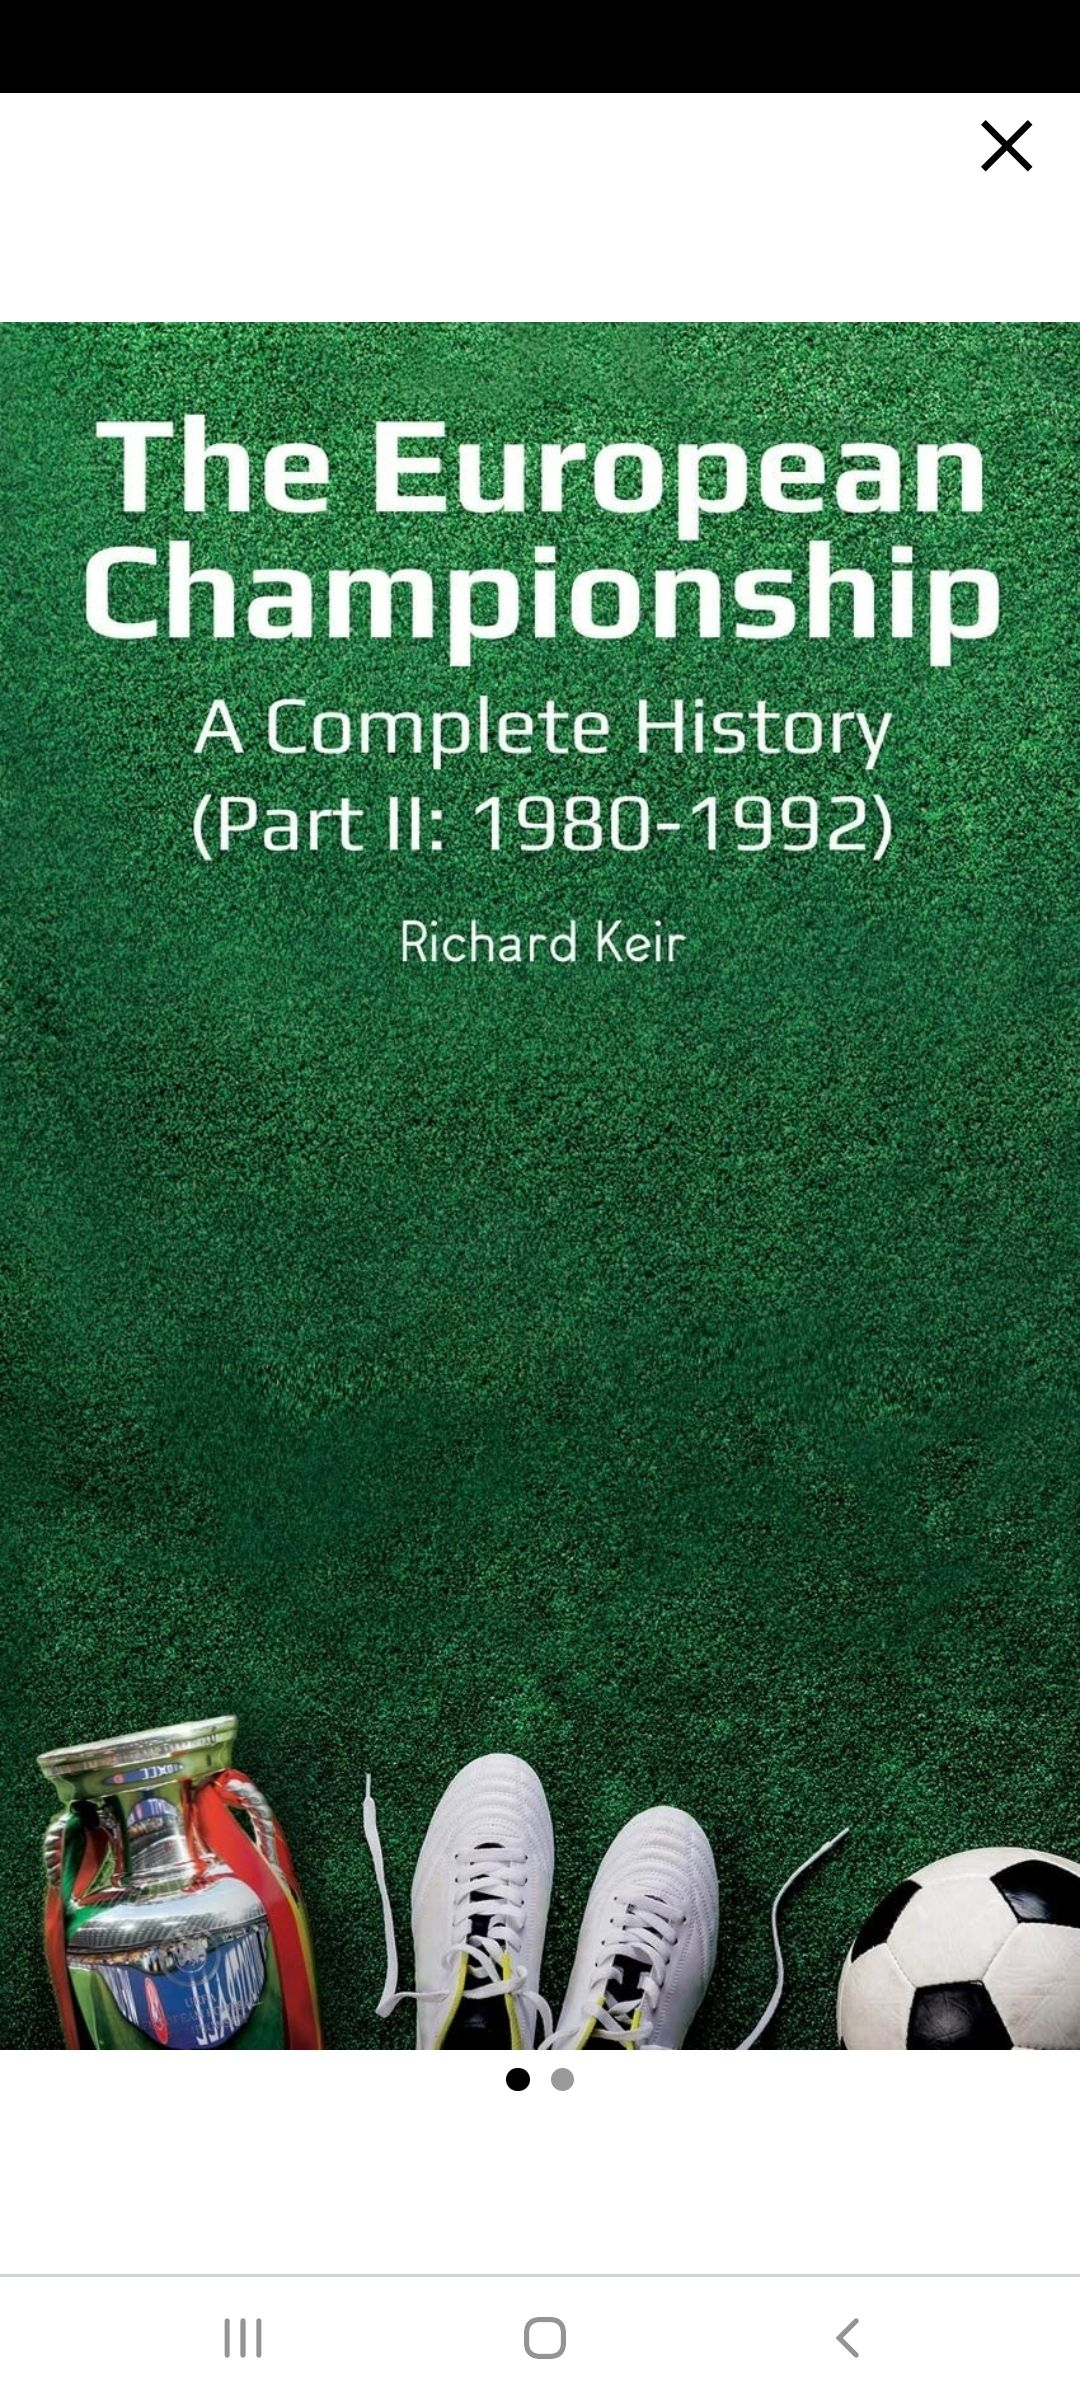 THE EUROPEAN CHAMPIONSHIP A COMPLETE HISTORY PART 2 (1980-1992)'s Book Image